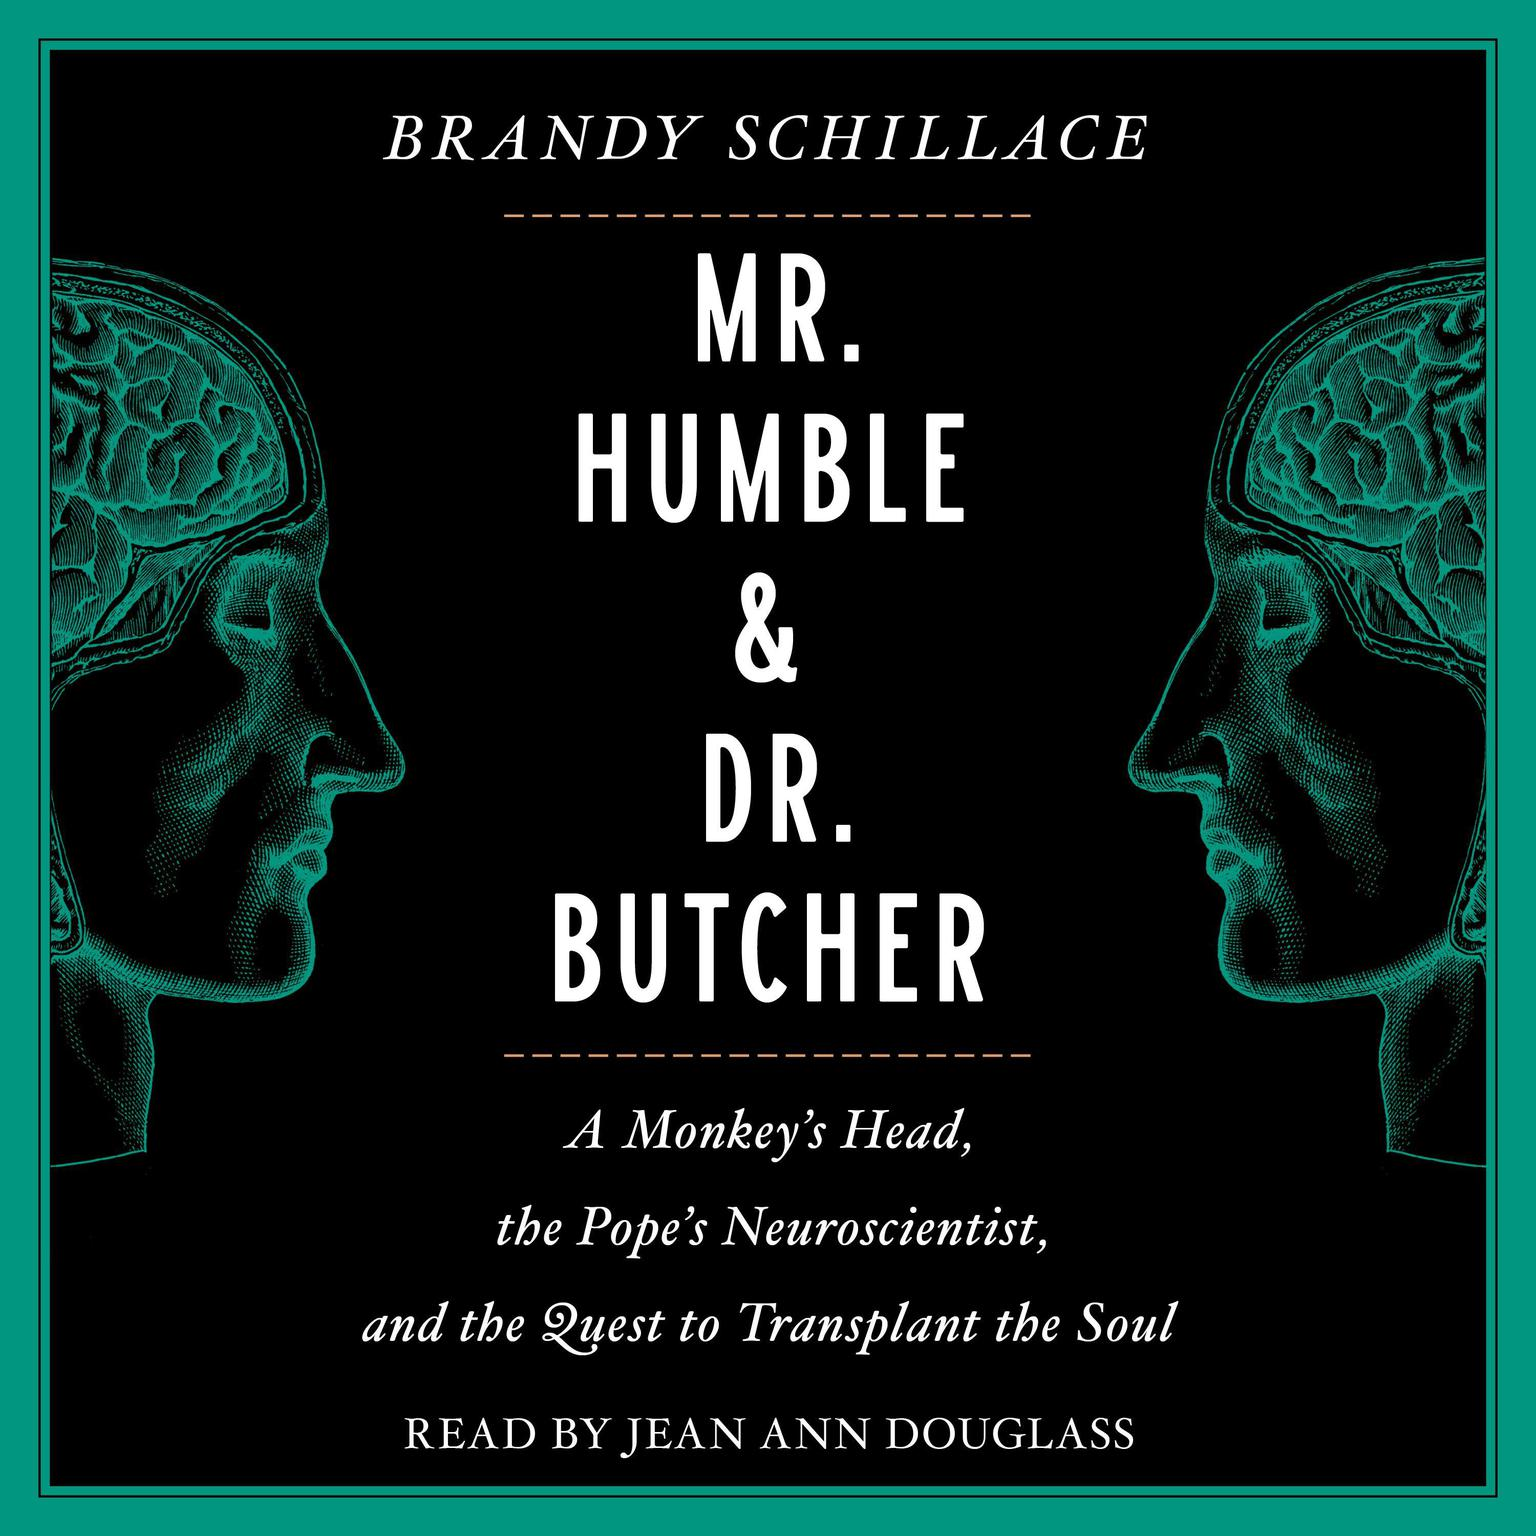 Mr. Humble and Dr. Butcher: Monkeys Head, the Popes Neuroscientist, and the Quest to Transplant the Soul Audiobook, by Brandy Schillace